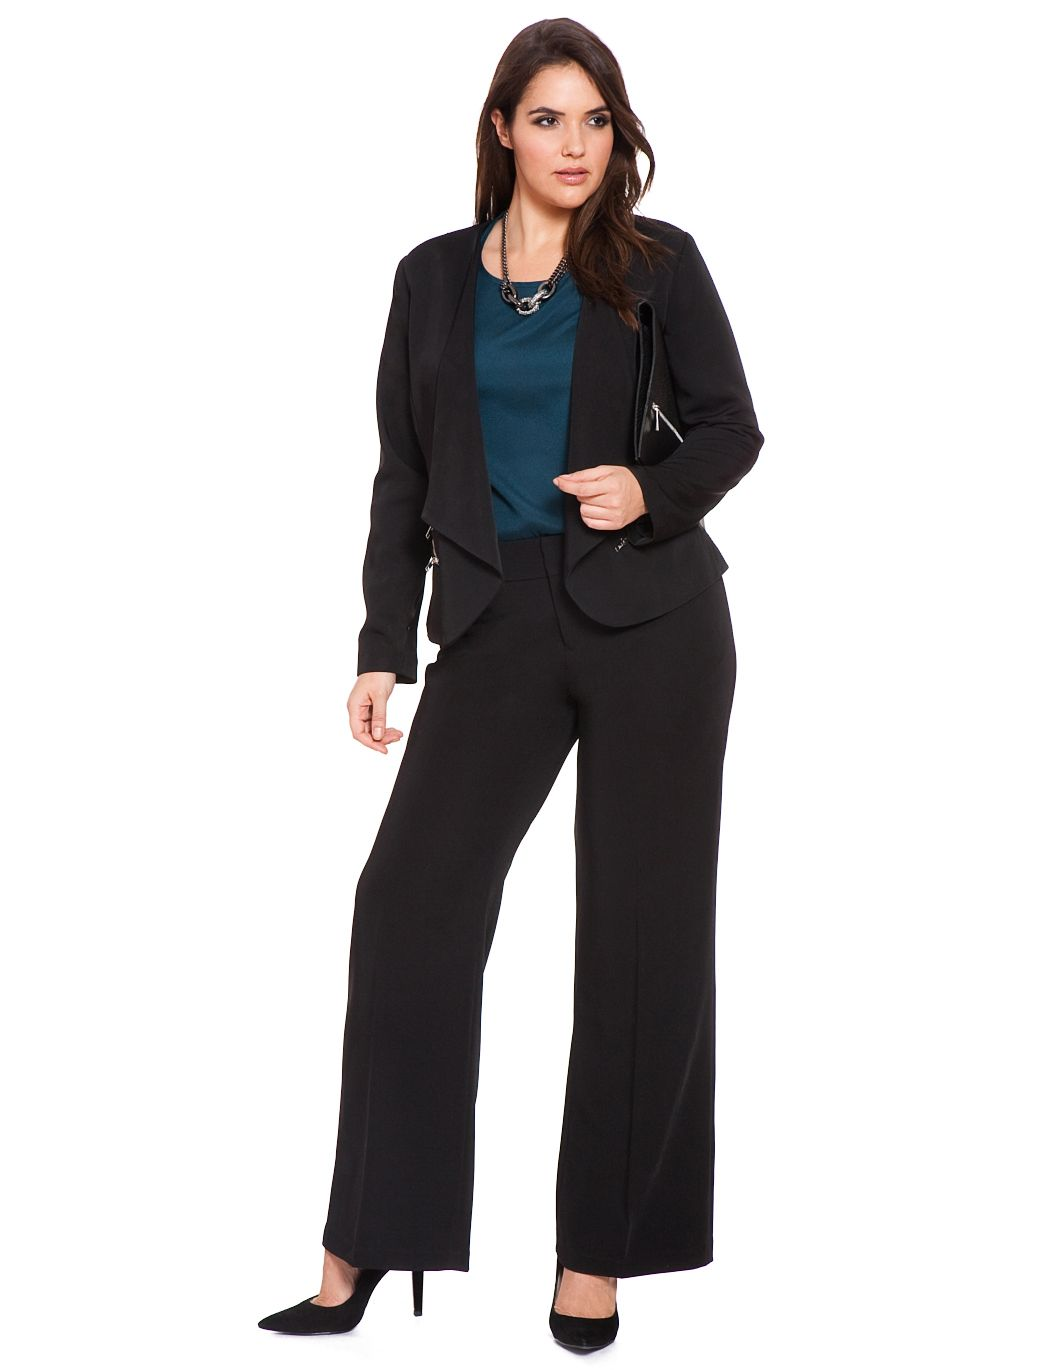 Plus Size Women Pant Suit